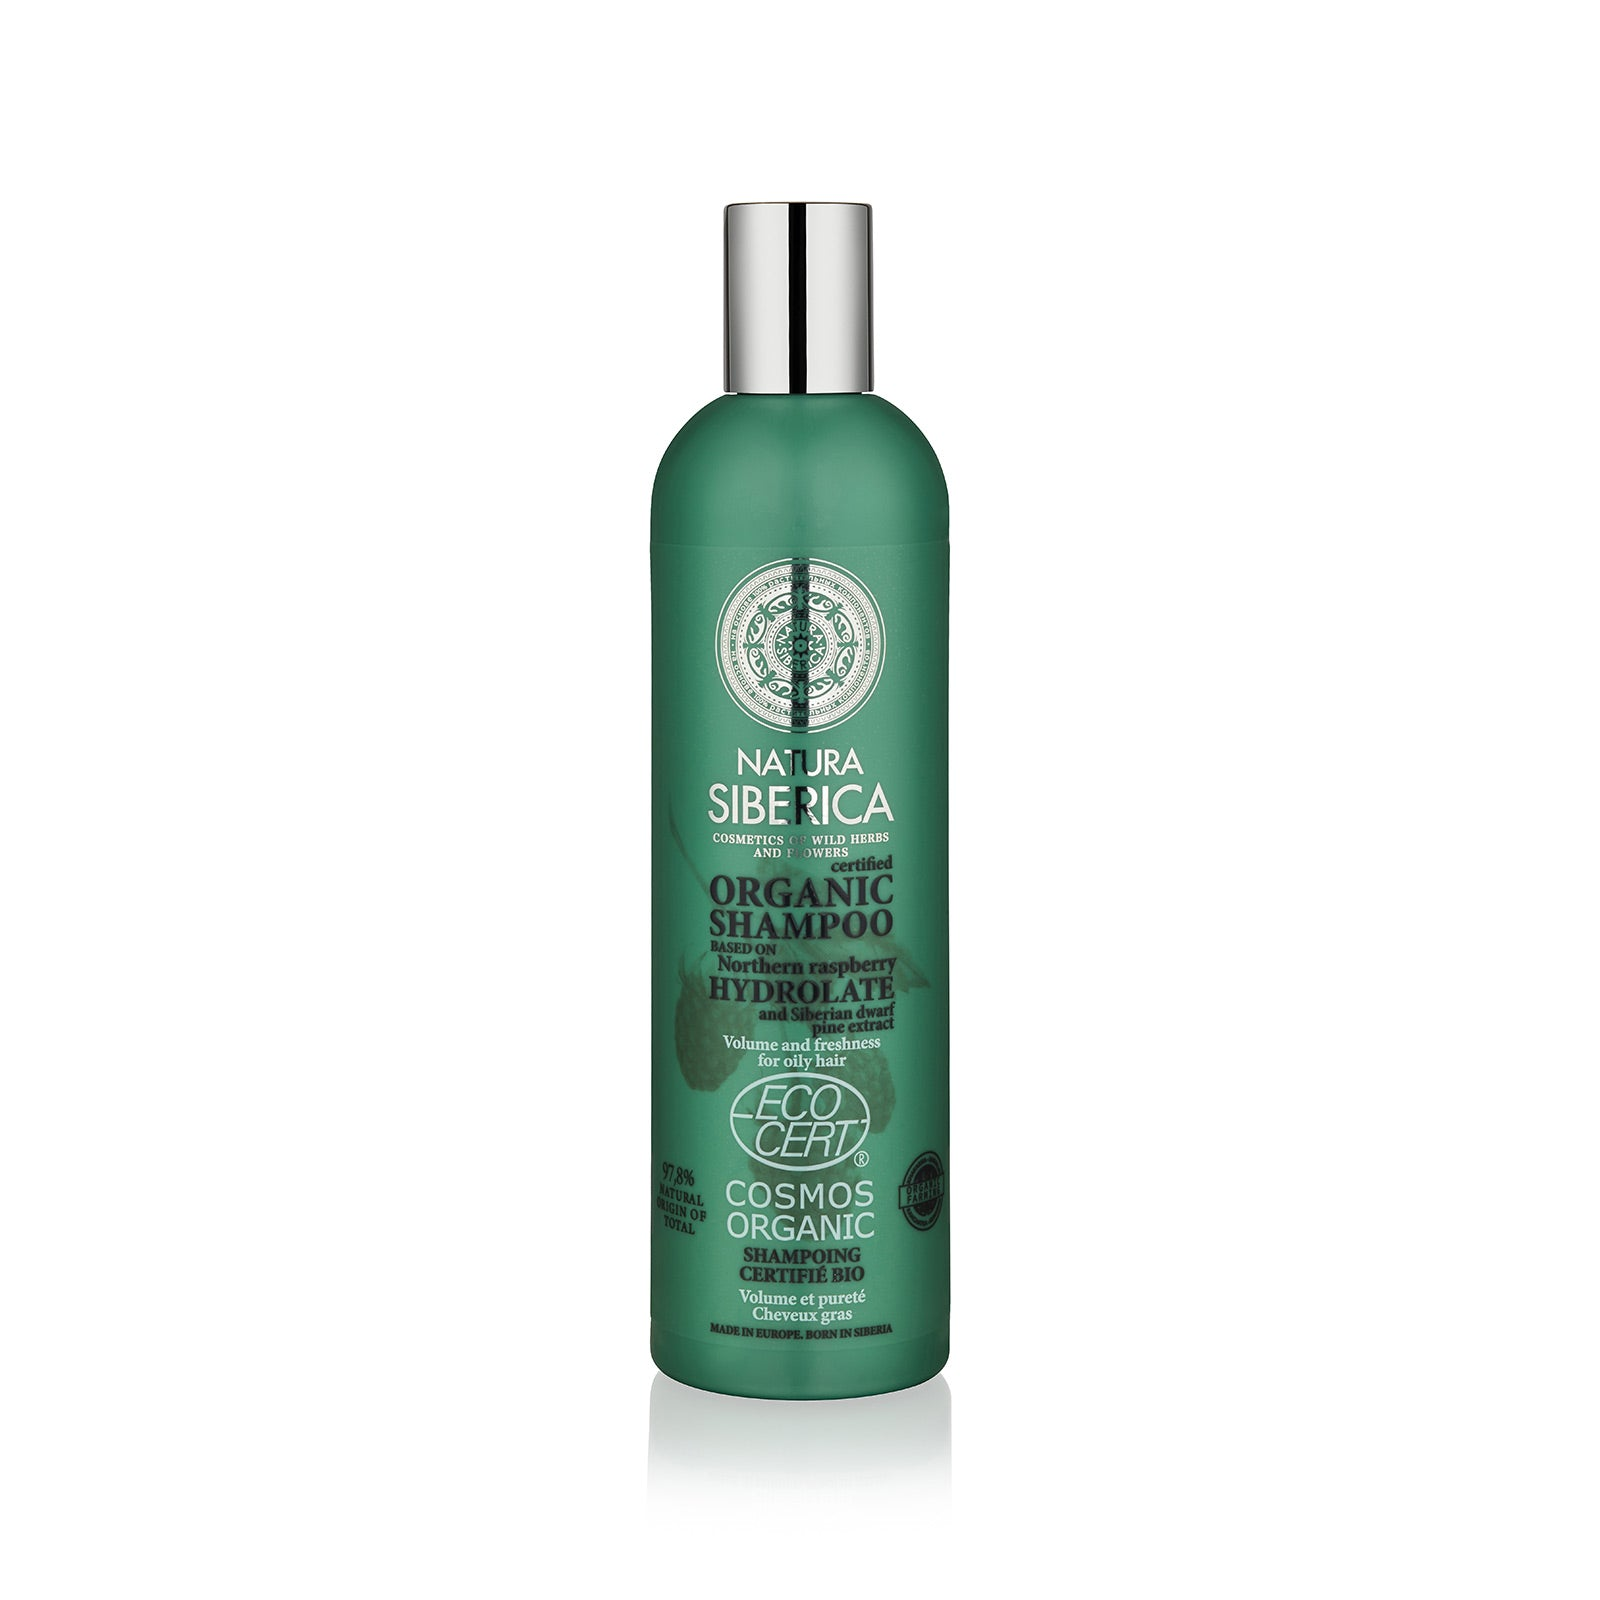 Volume and Freshness Shampoo. For oily hair, 400 ml